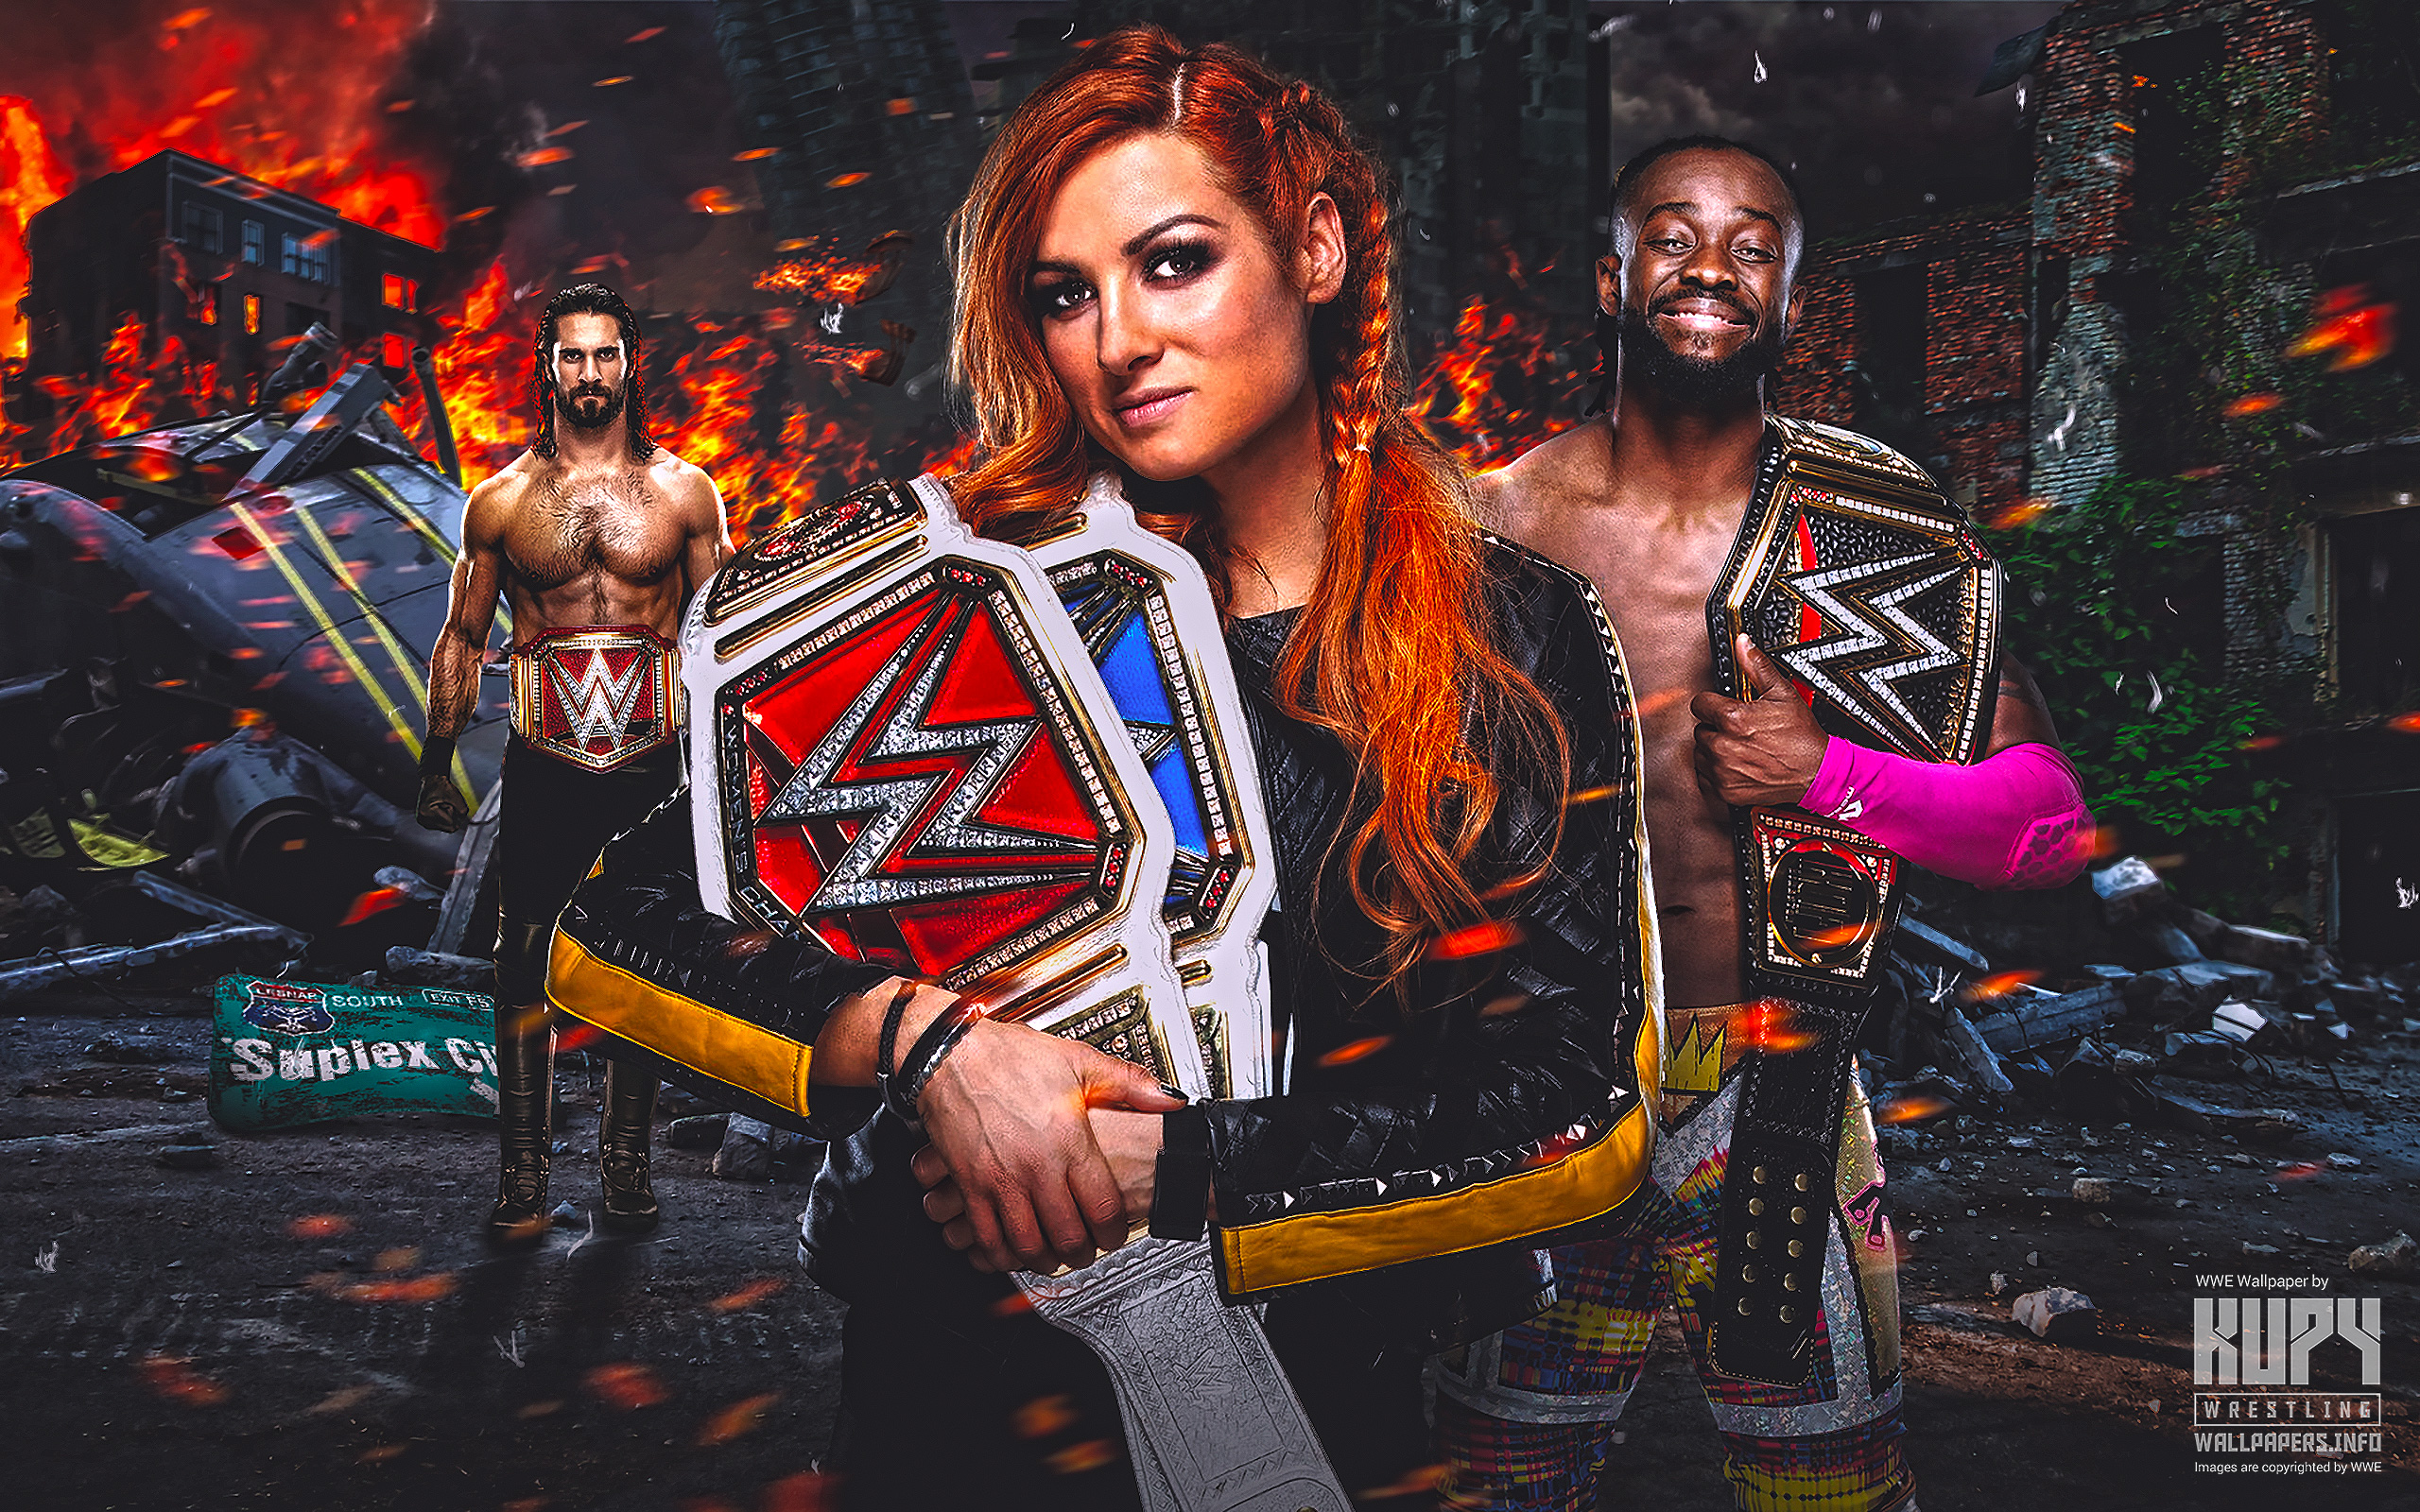 Kupy Wrestling Wallpapers The latest source for your WWE 2560x1600